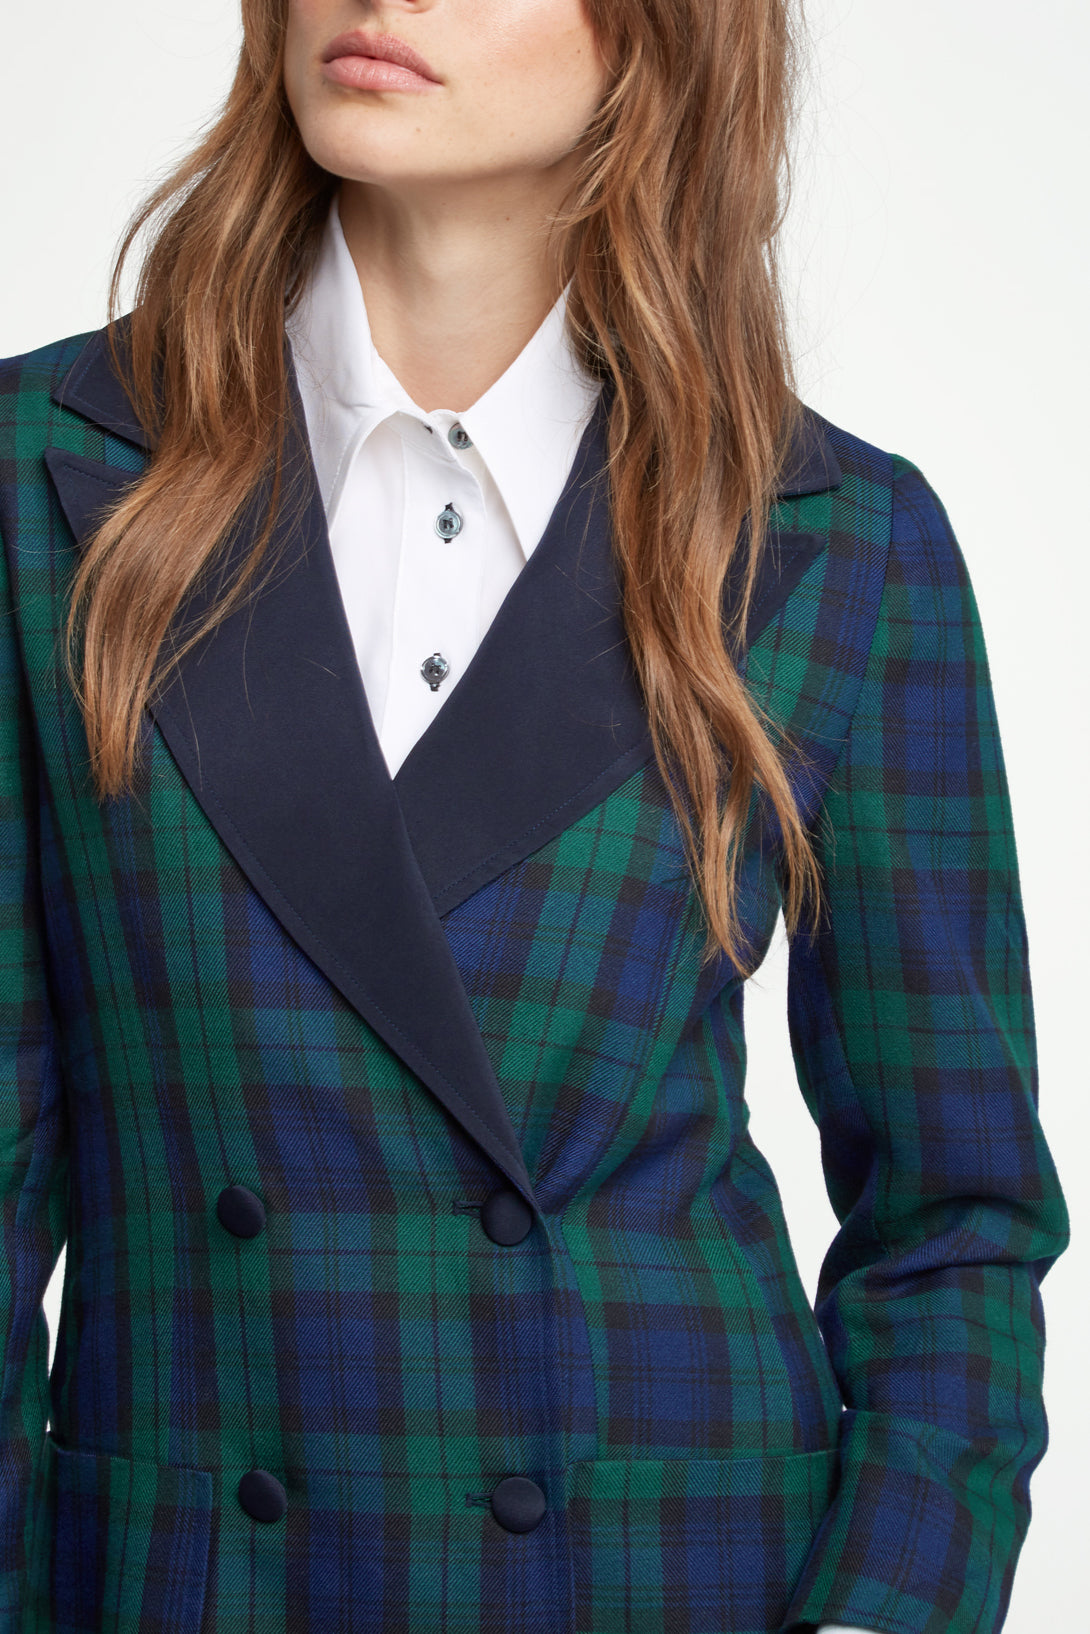 The Double Breasted Blazer - Navy & Green Plaid - SERENA BUTE